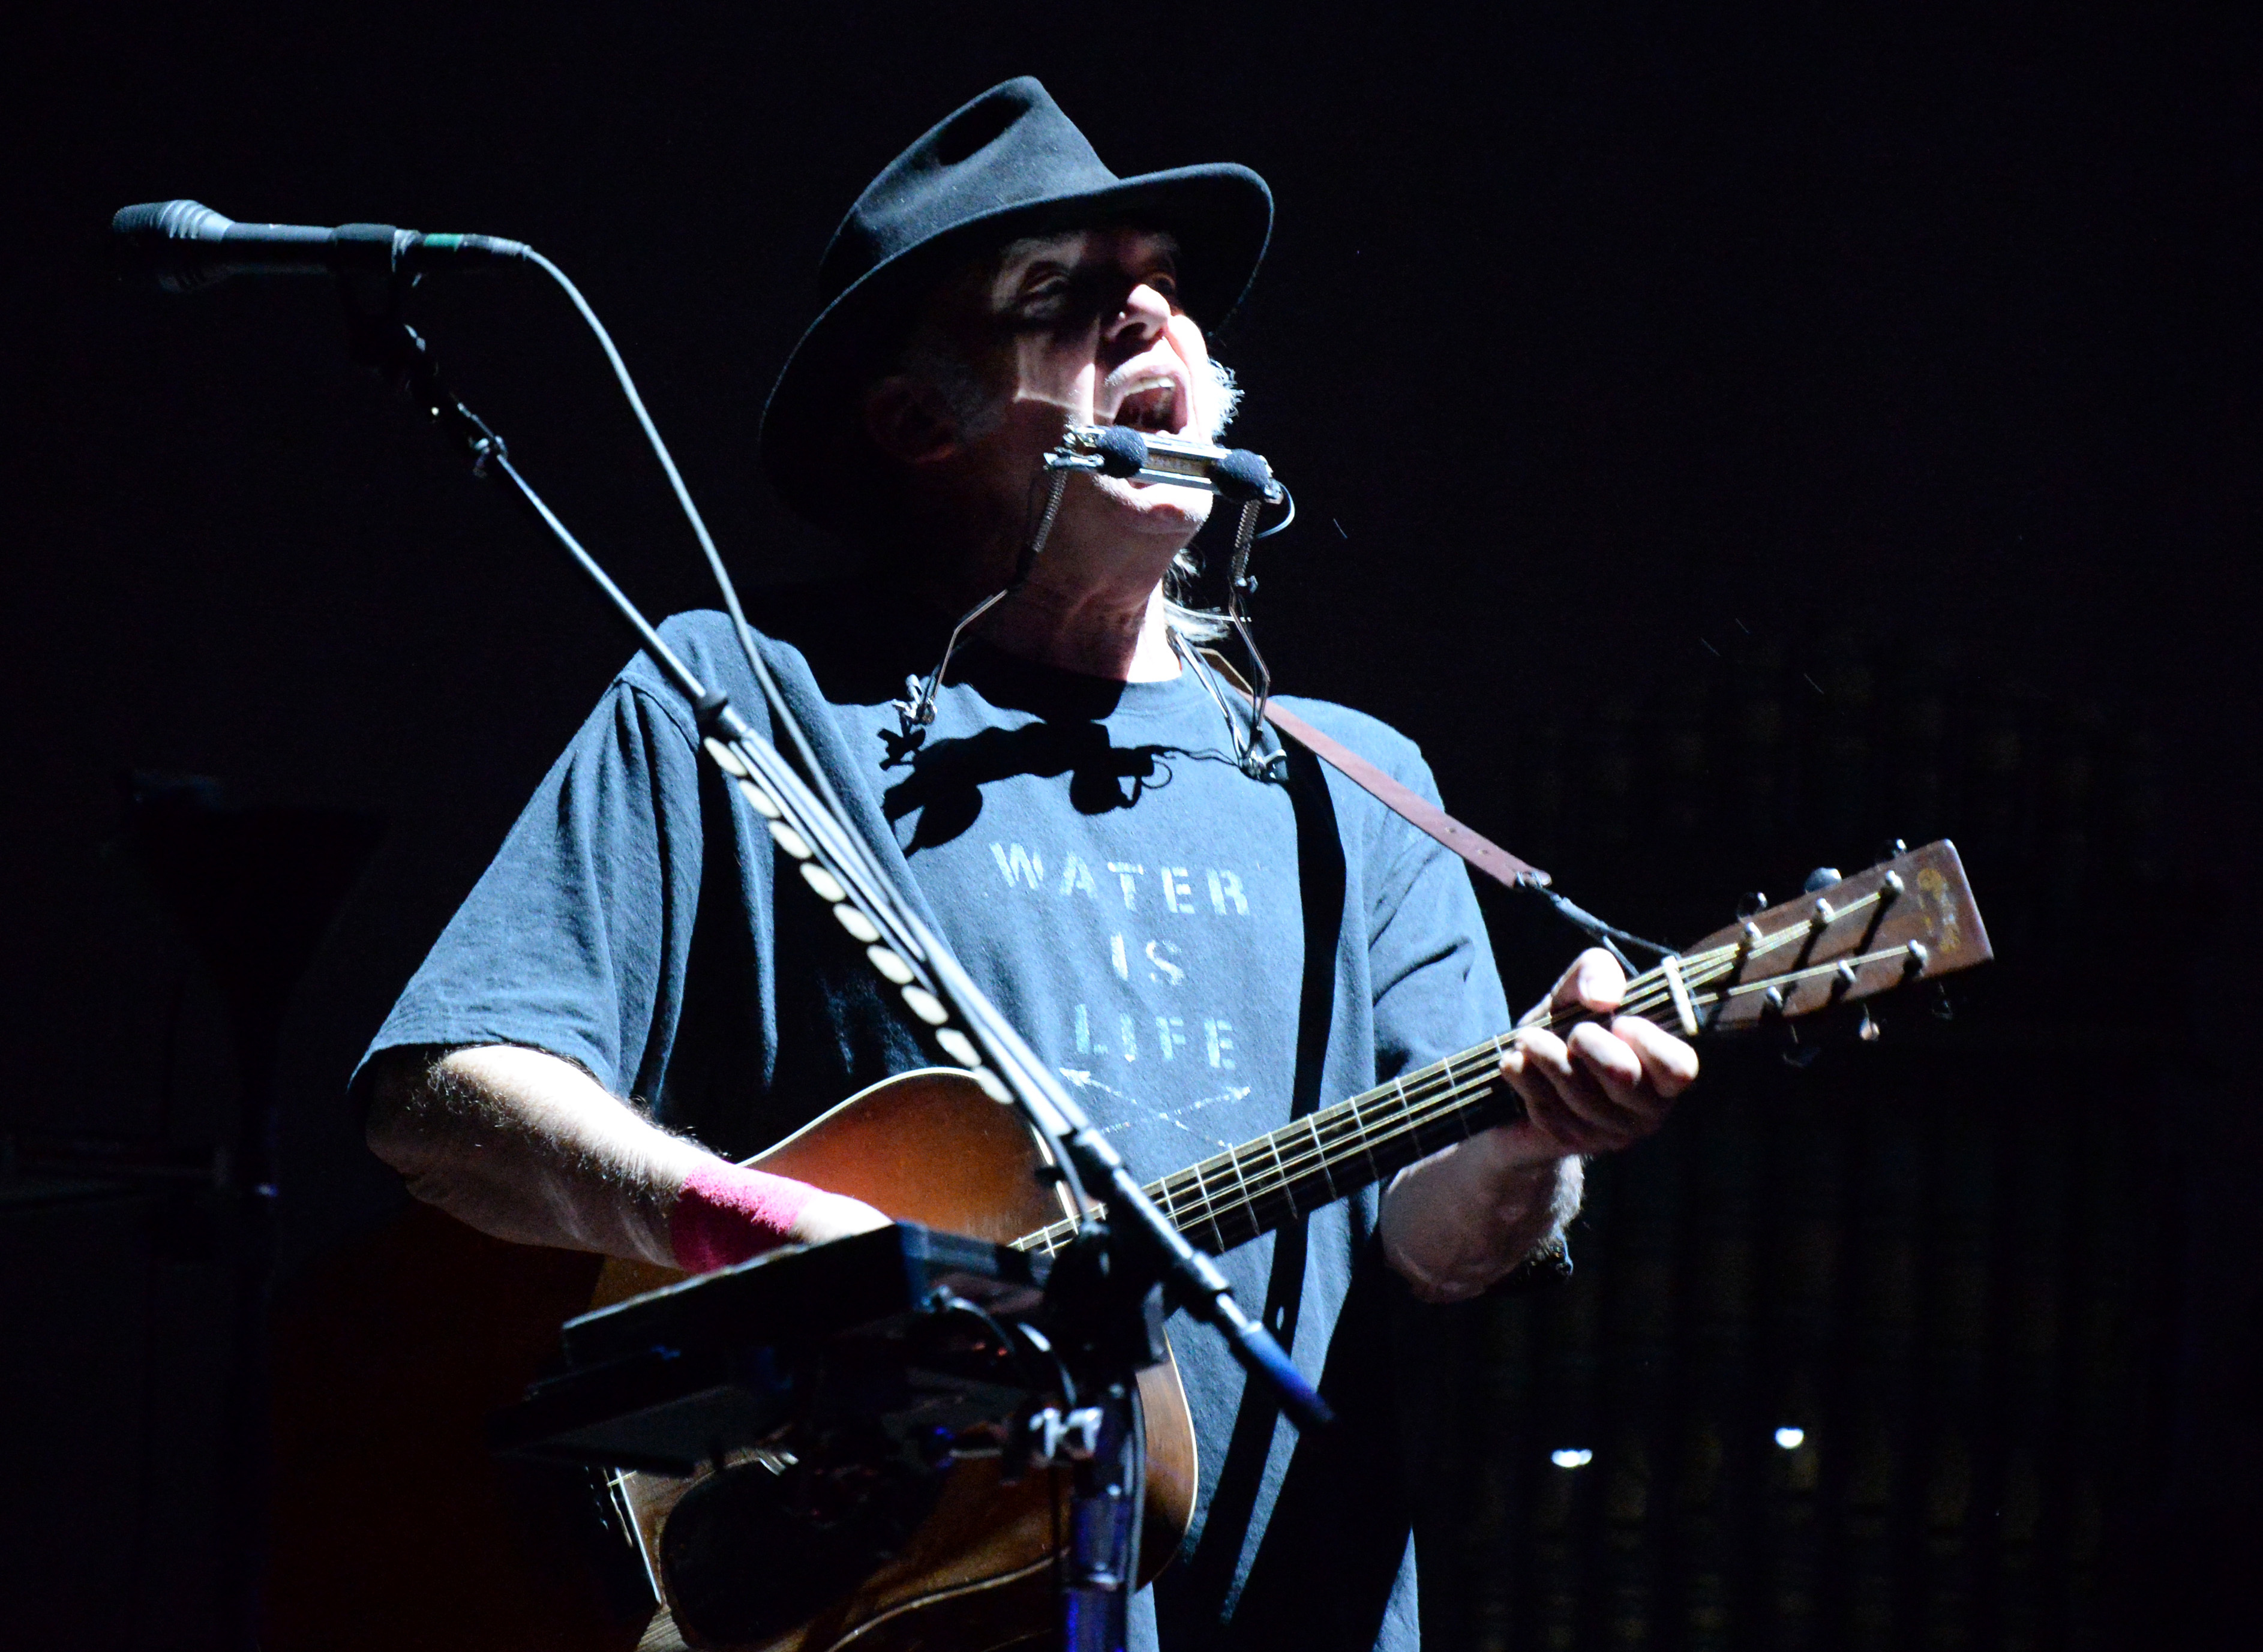 Neil Young performs onstage during Desert Trip at The Empire Polo Club on October 8, 2016 in Indio, California. (Photo by Kevin Mazur/Getty Images for Desert Trip. Used with permission)